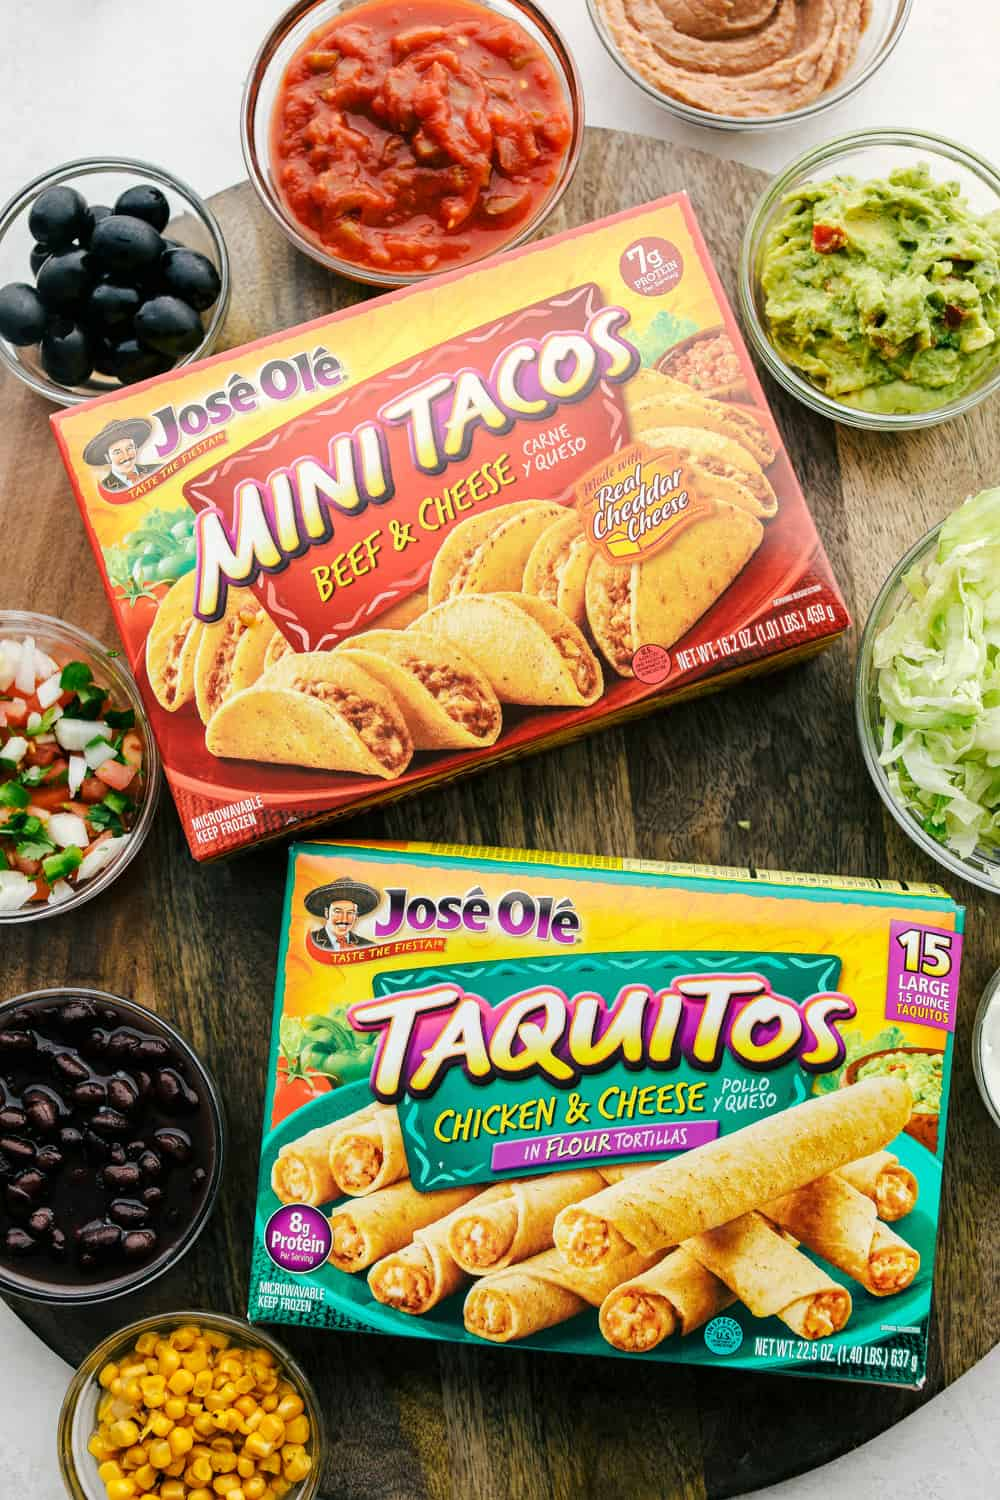 Mini tacos and taquitos in a box with bowls of dips and vegetables.